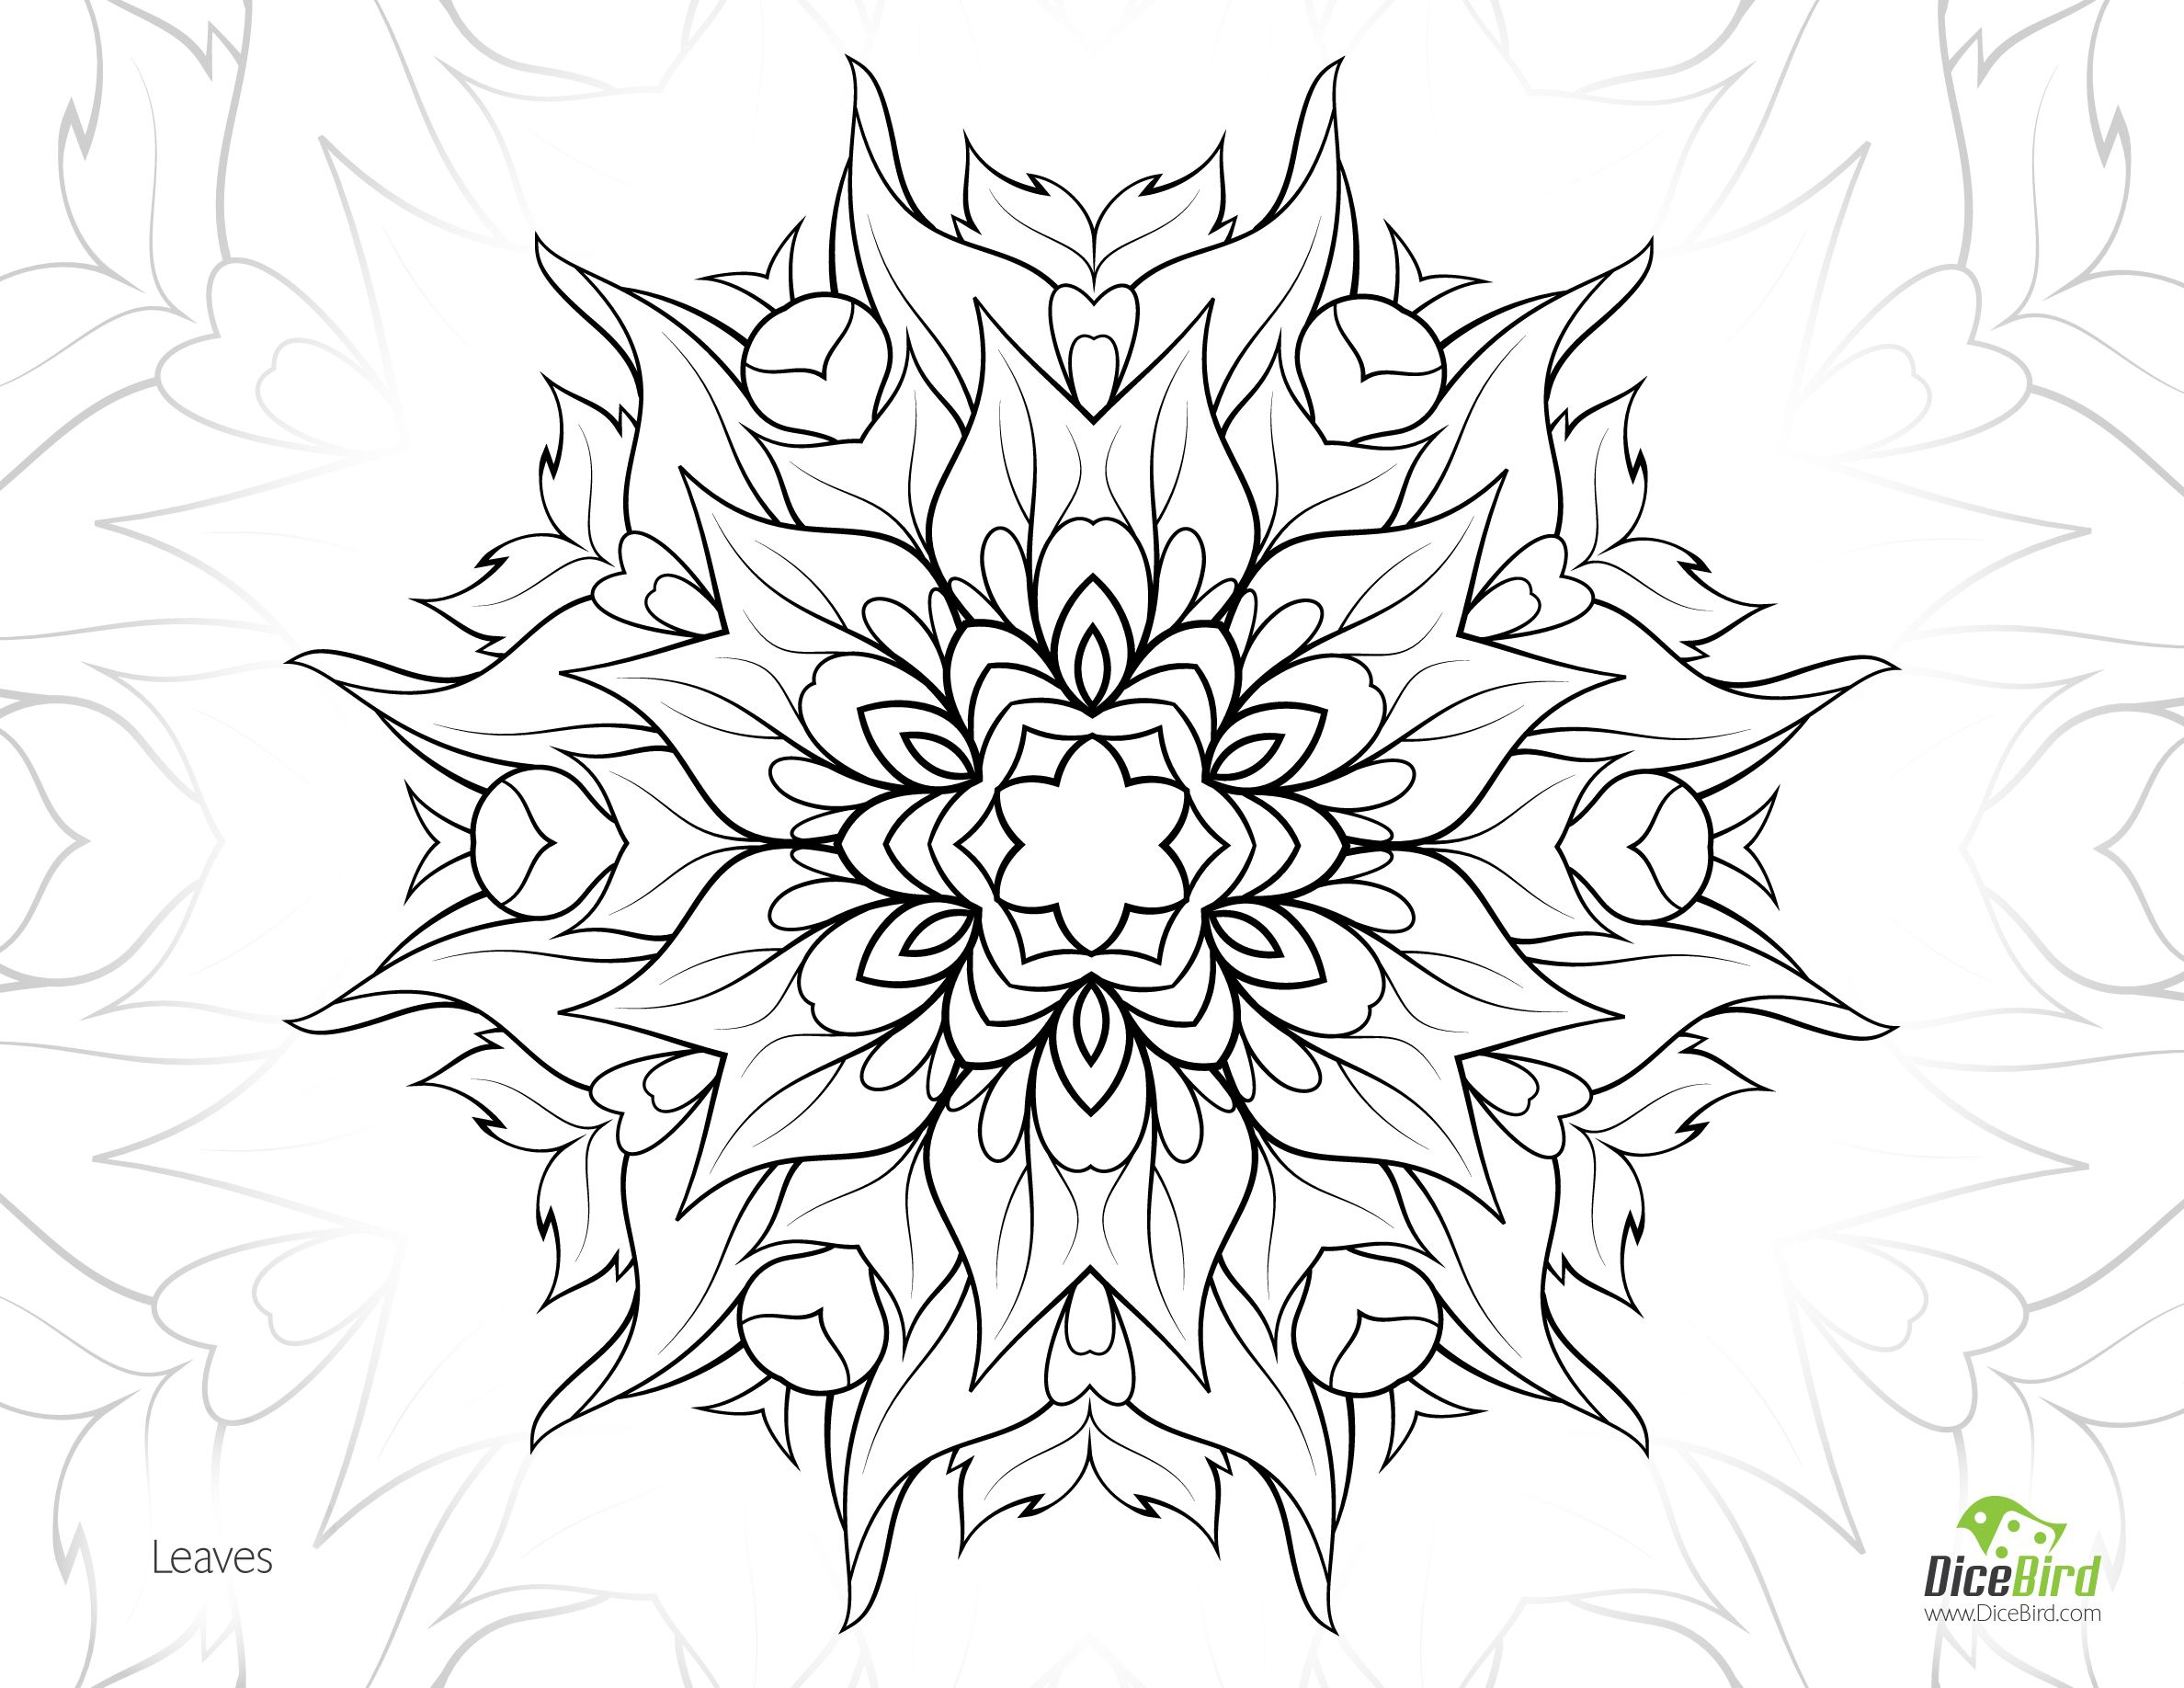 Stress relief coloring sheets free - Leaves Flower Free Adult Printable Mandala Colouring Page